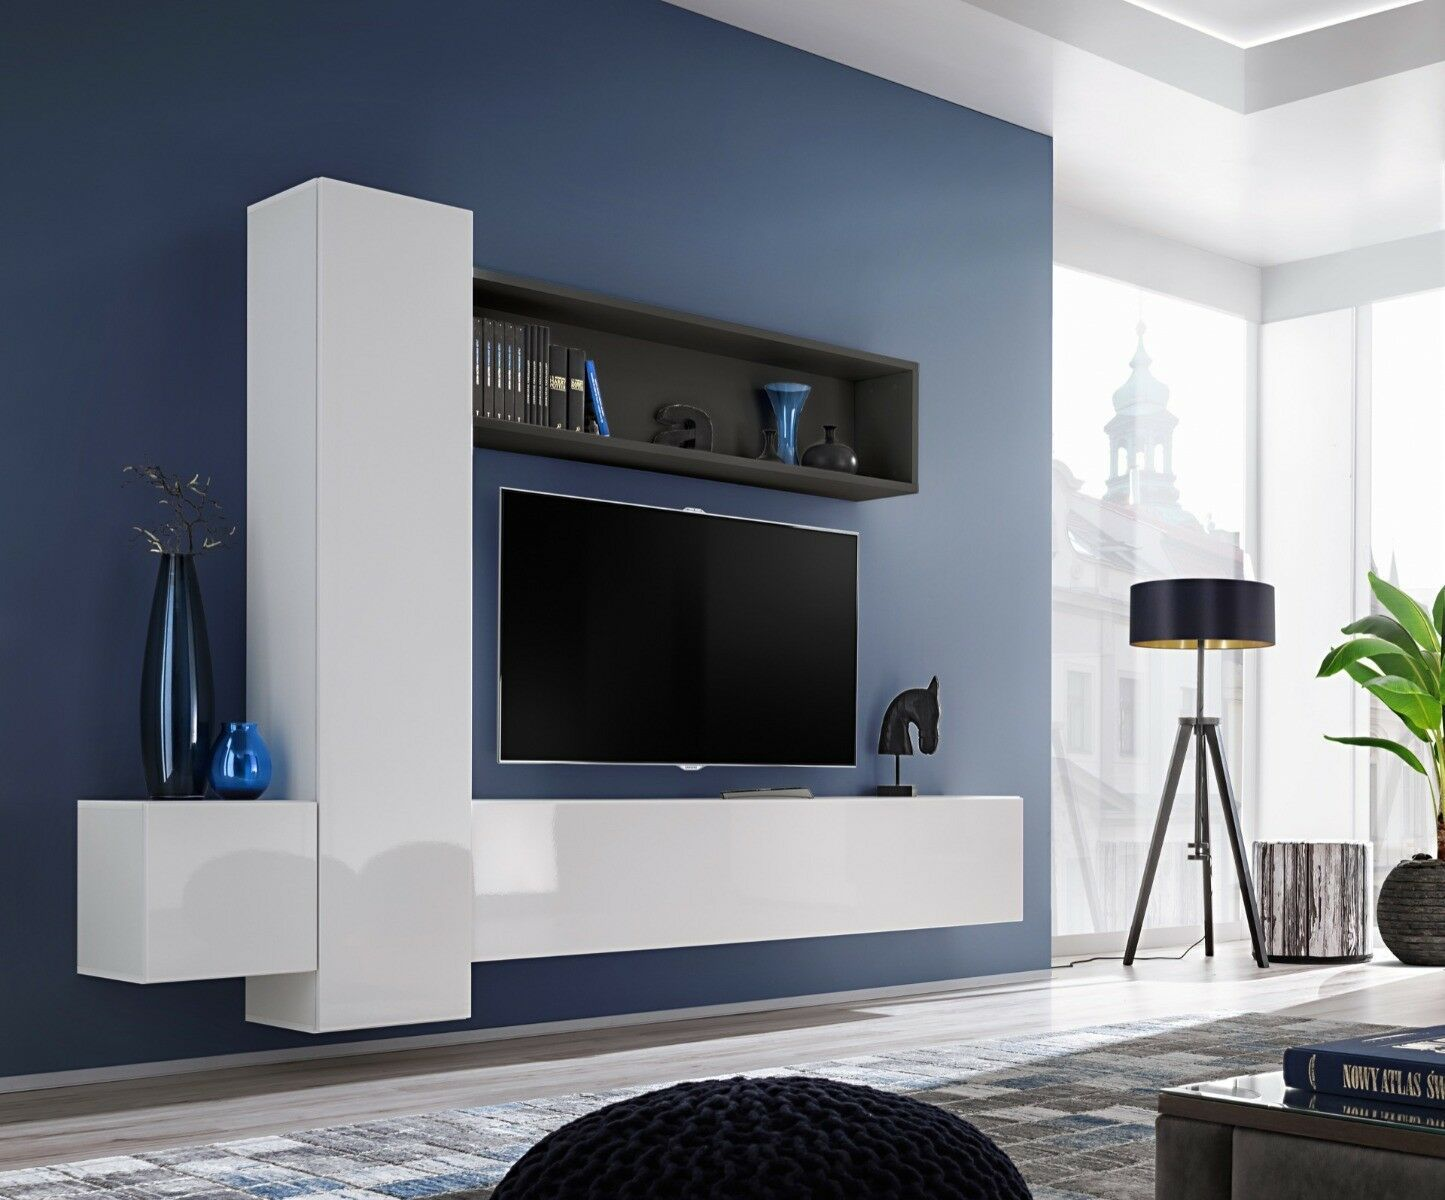 Pin Auf Home Decors And Designs